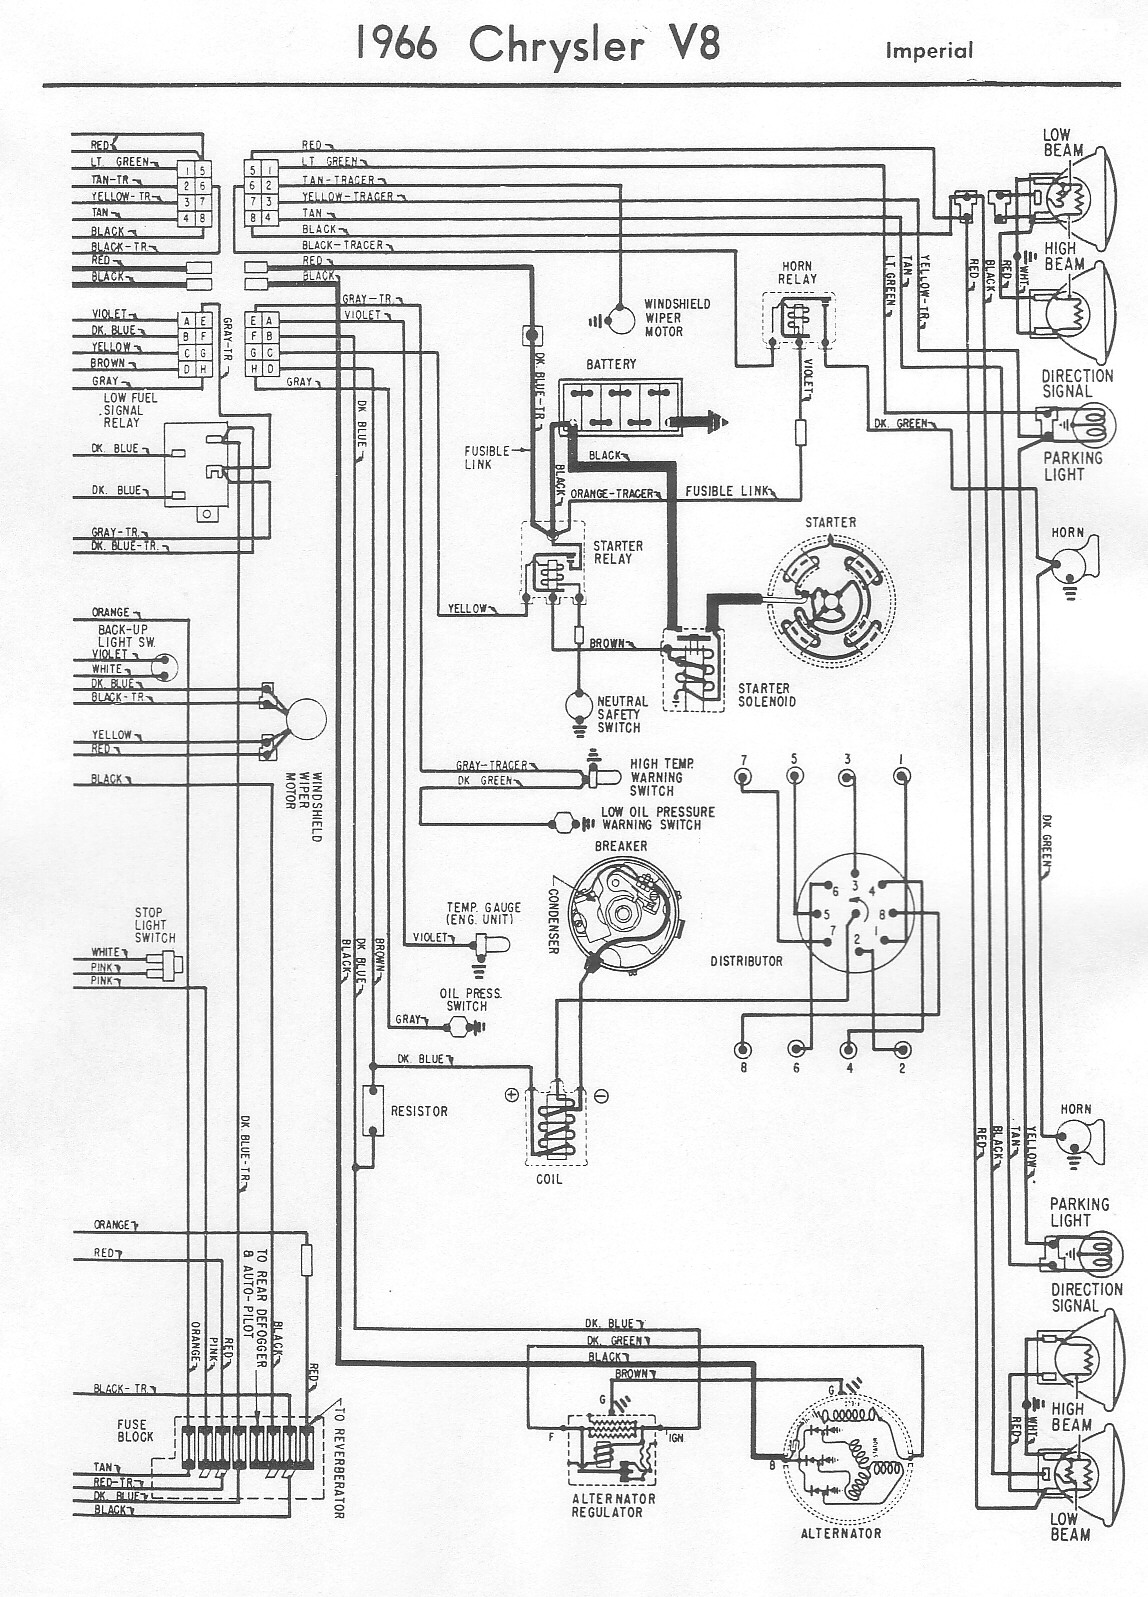 medium resolution of 1964 chrysler 300 wiring diagram automotive wiring diagrams 2005 chrysler 300 stereo wiring diagram 1966 chrysler